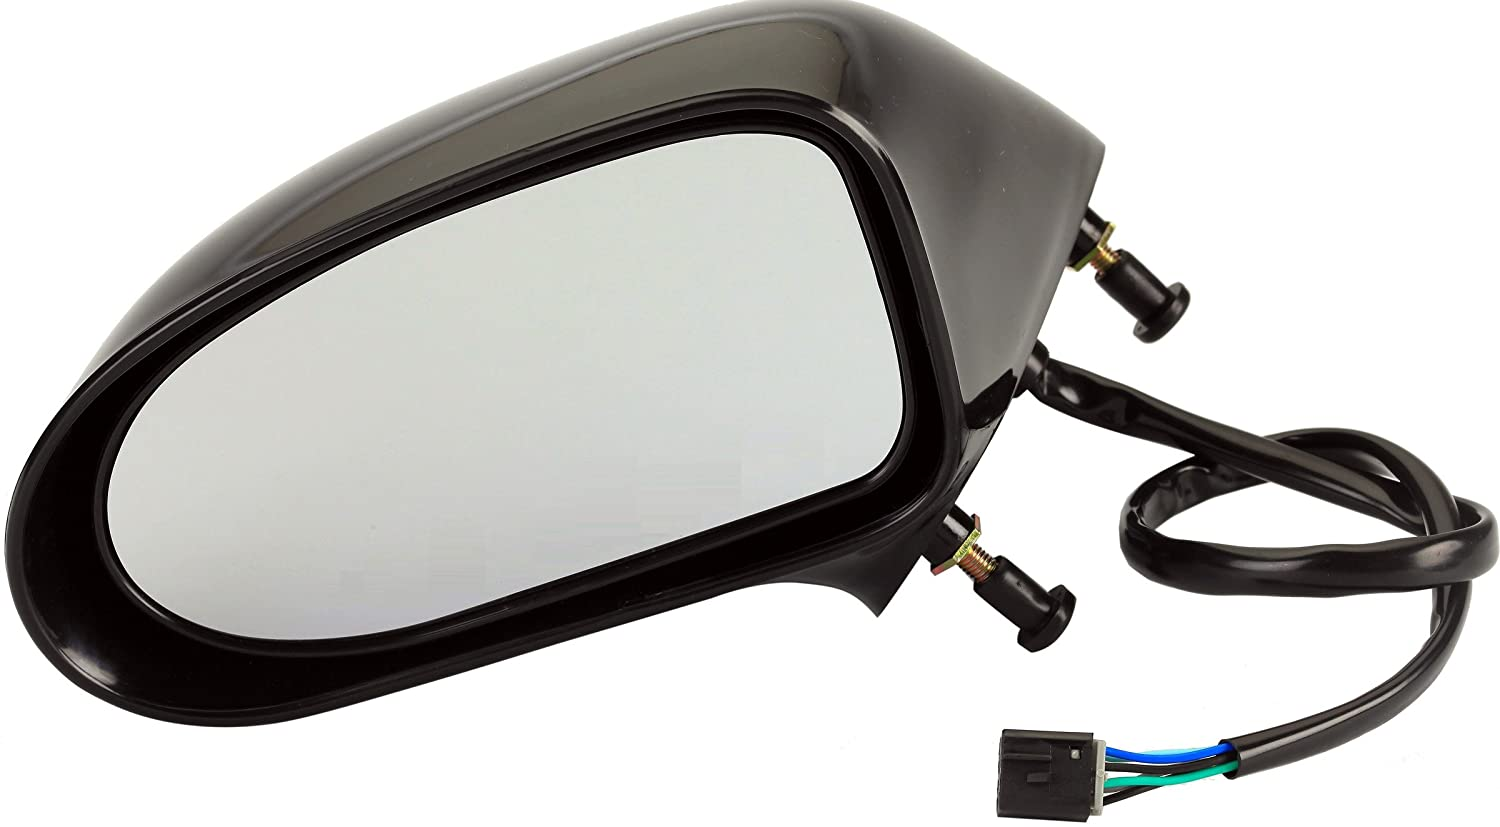 Dorman 955-1471 Buick LeSabre//Oldsmobile 98 Driver Side Power Heated Replacement Side View Mirror